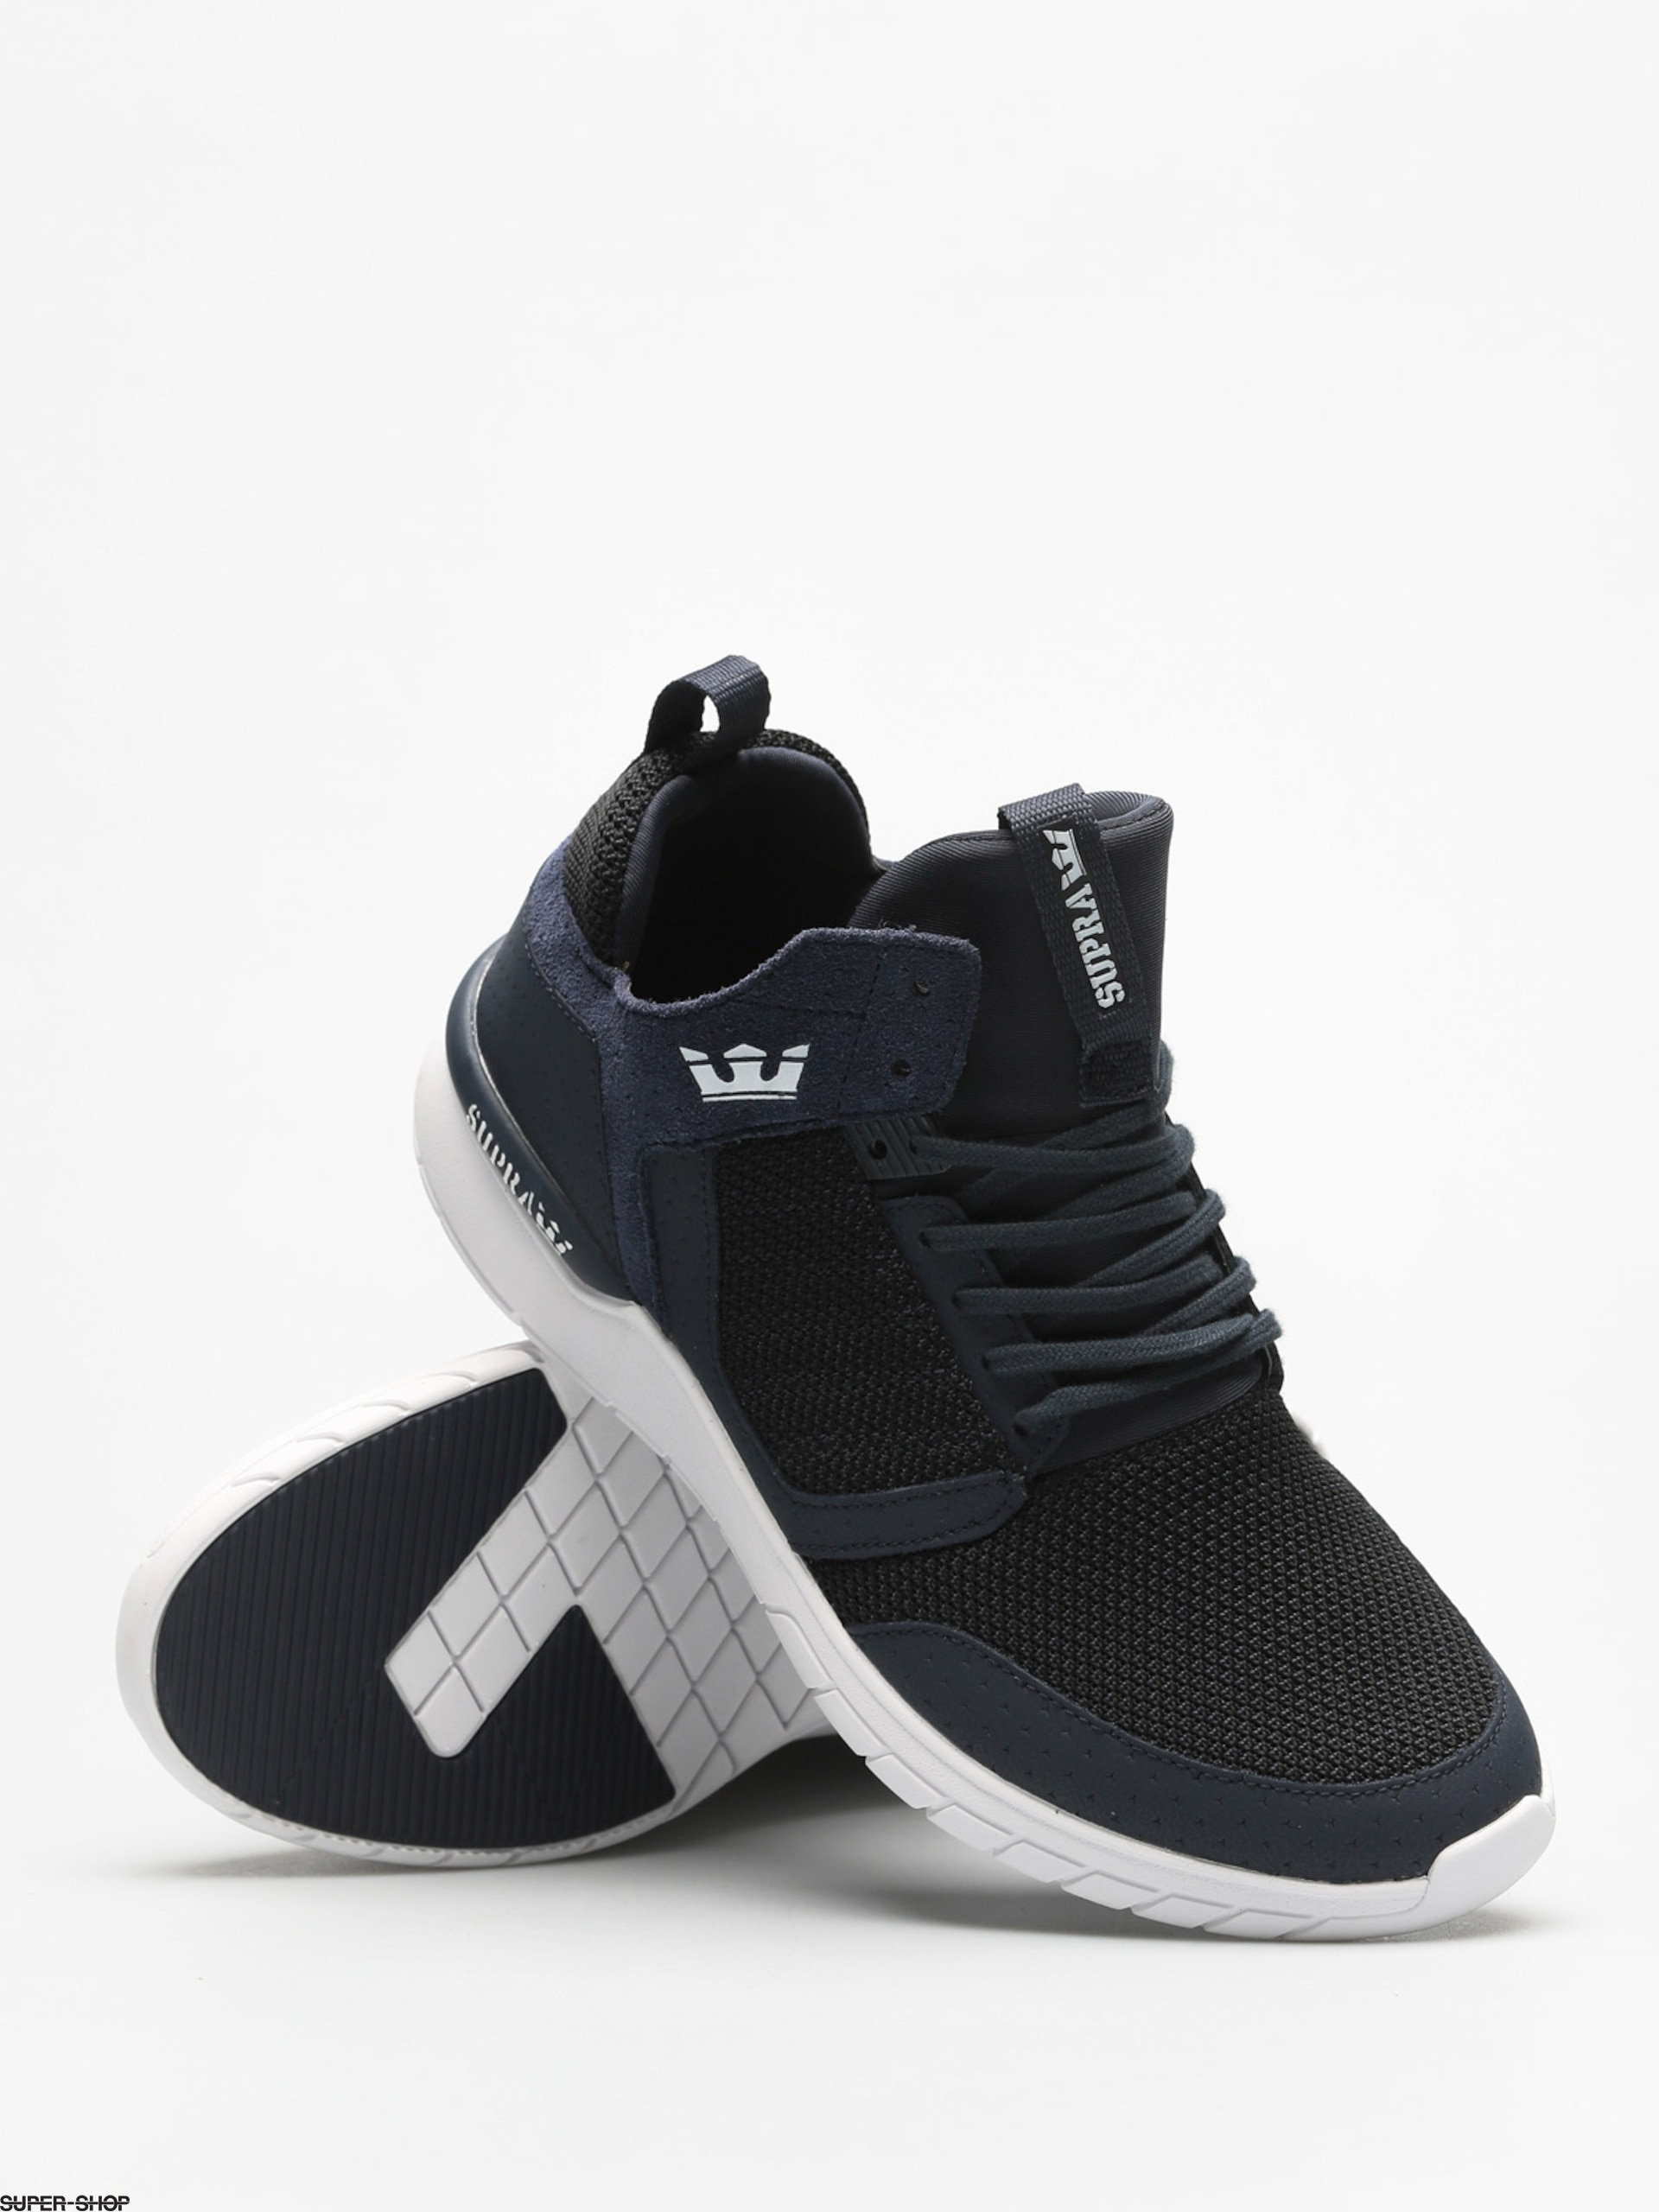 Supra Method Navy/ Black-White 3X66Jc